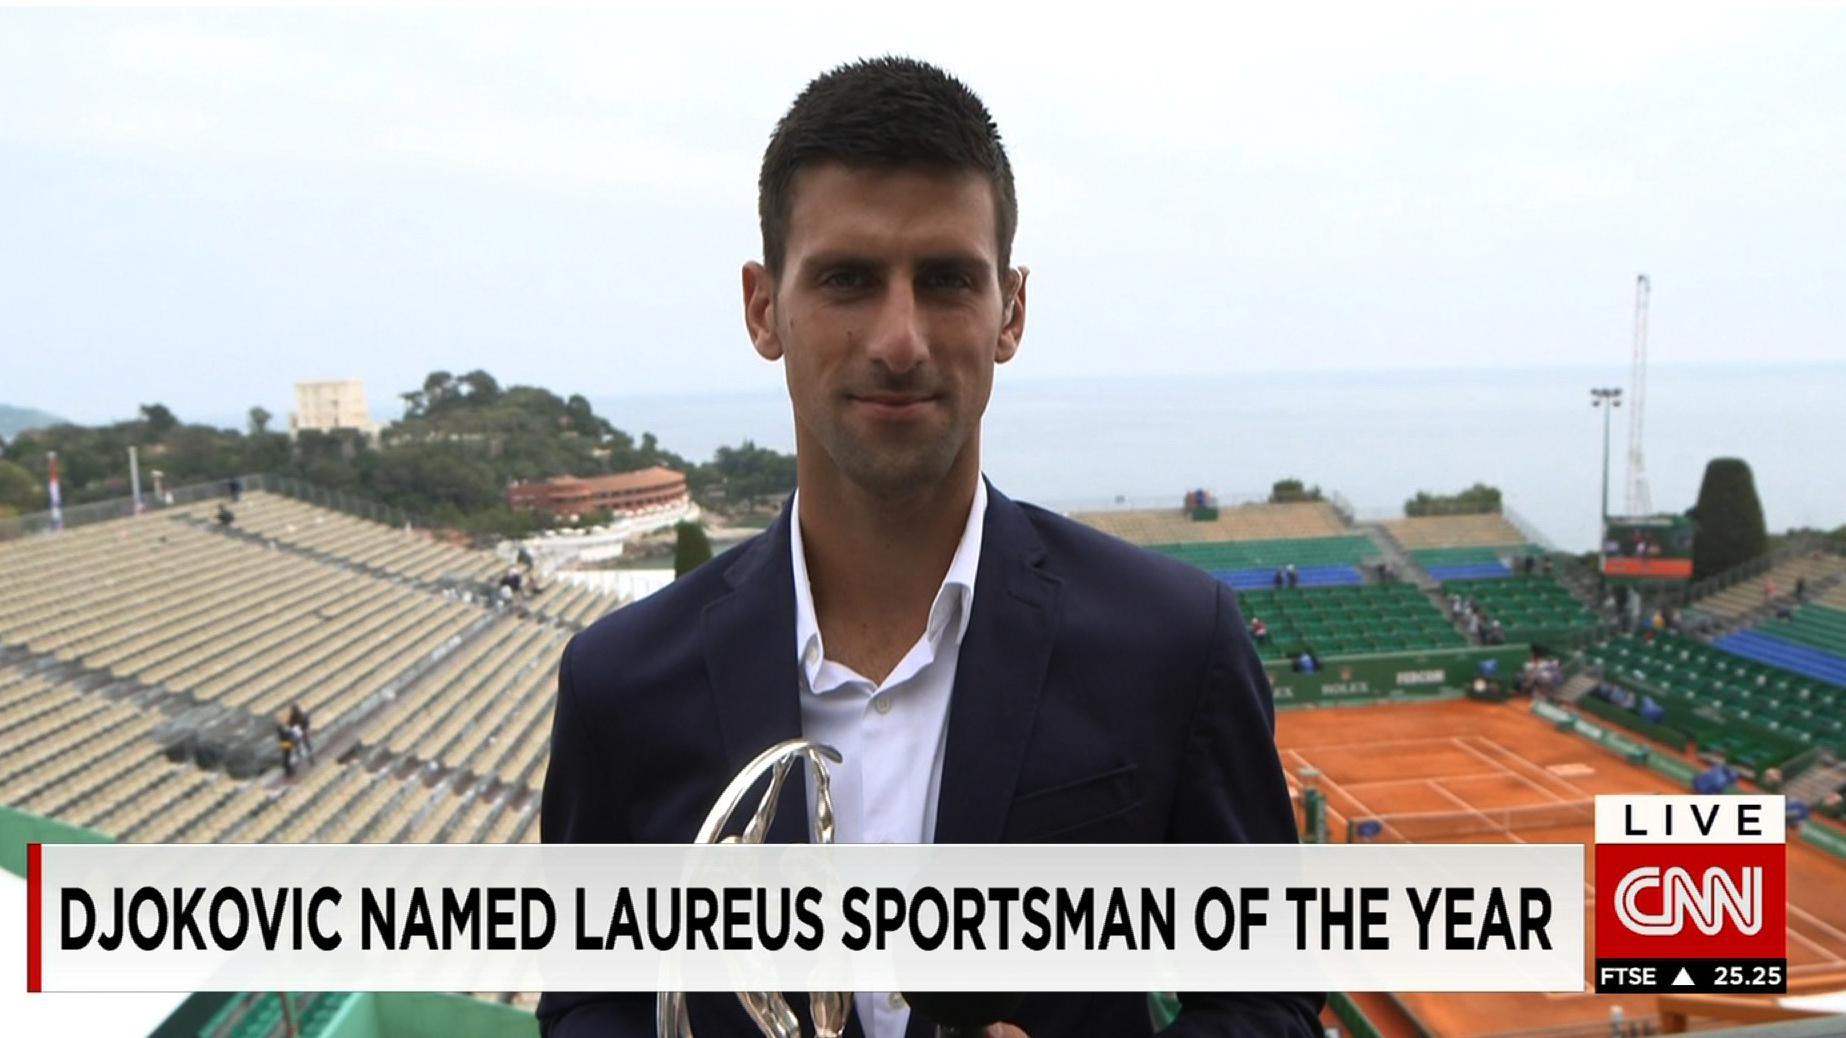 Novak Djokovic talks to CNN about winning Laureus Sportsman of the Year prize, chances at Roland Garros